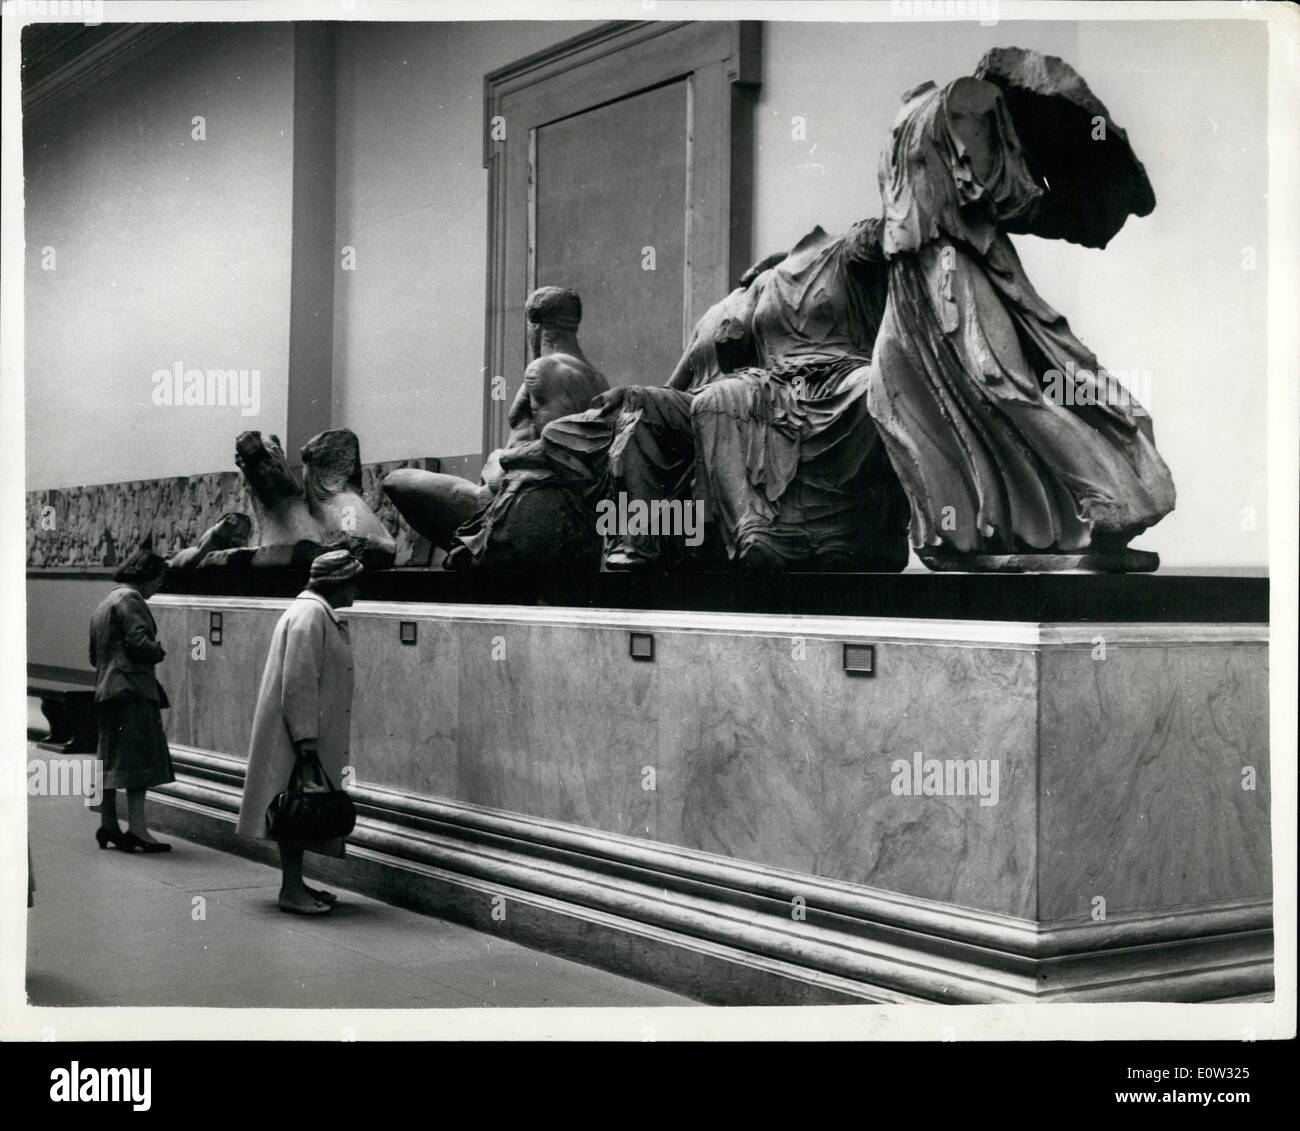 May 05, 1961 - Permanent home for the famous Elgin Marbles - at the British Museum. campaign for their return to Athens.: The famous Elgin Marbles are on display at the Old Gallery of the British Museum - until work is completed on the restoration of the Duveen Gallery which is being prepared for them as a permanent home. the marbles were in vaults in various parts of the Museum during the war for safe-keeping until they were displayed again in September 1949 - Stock Image